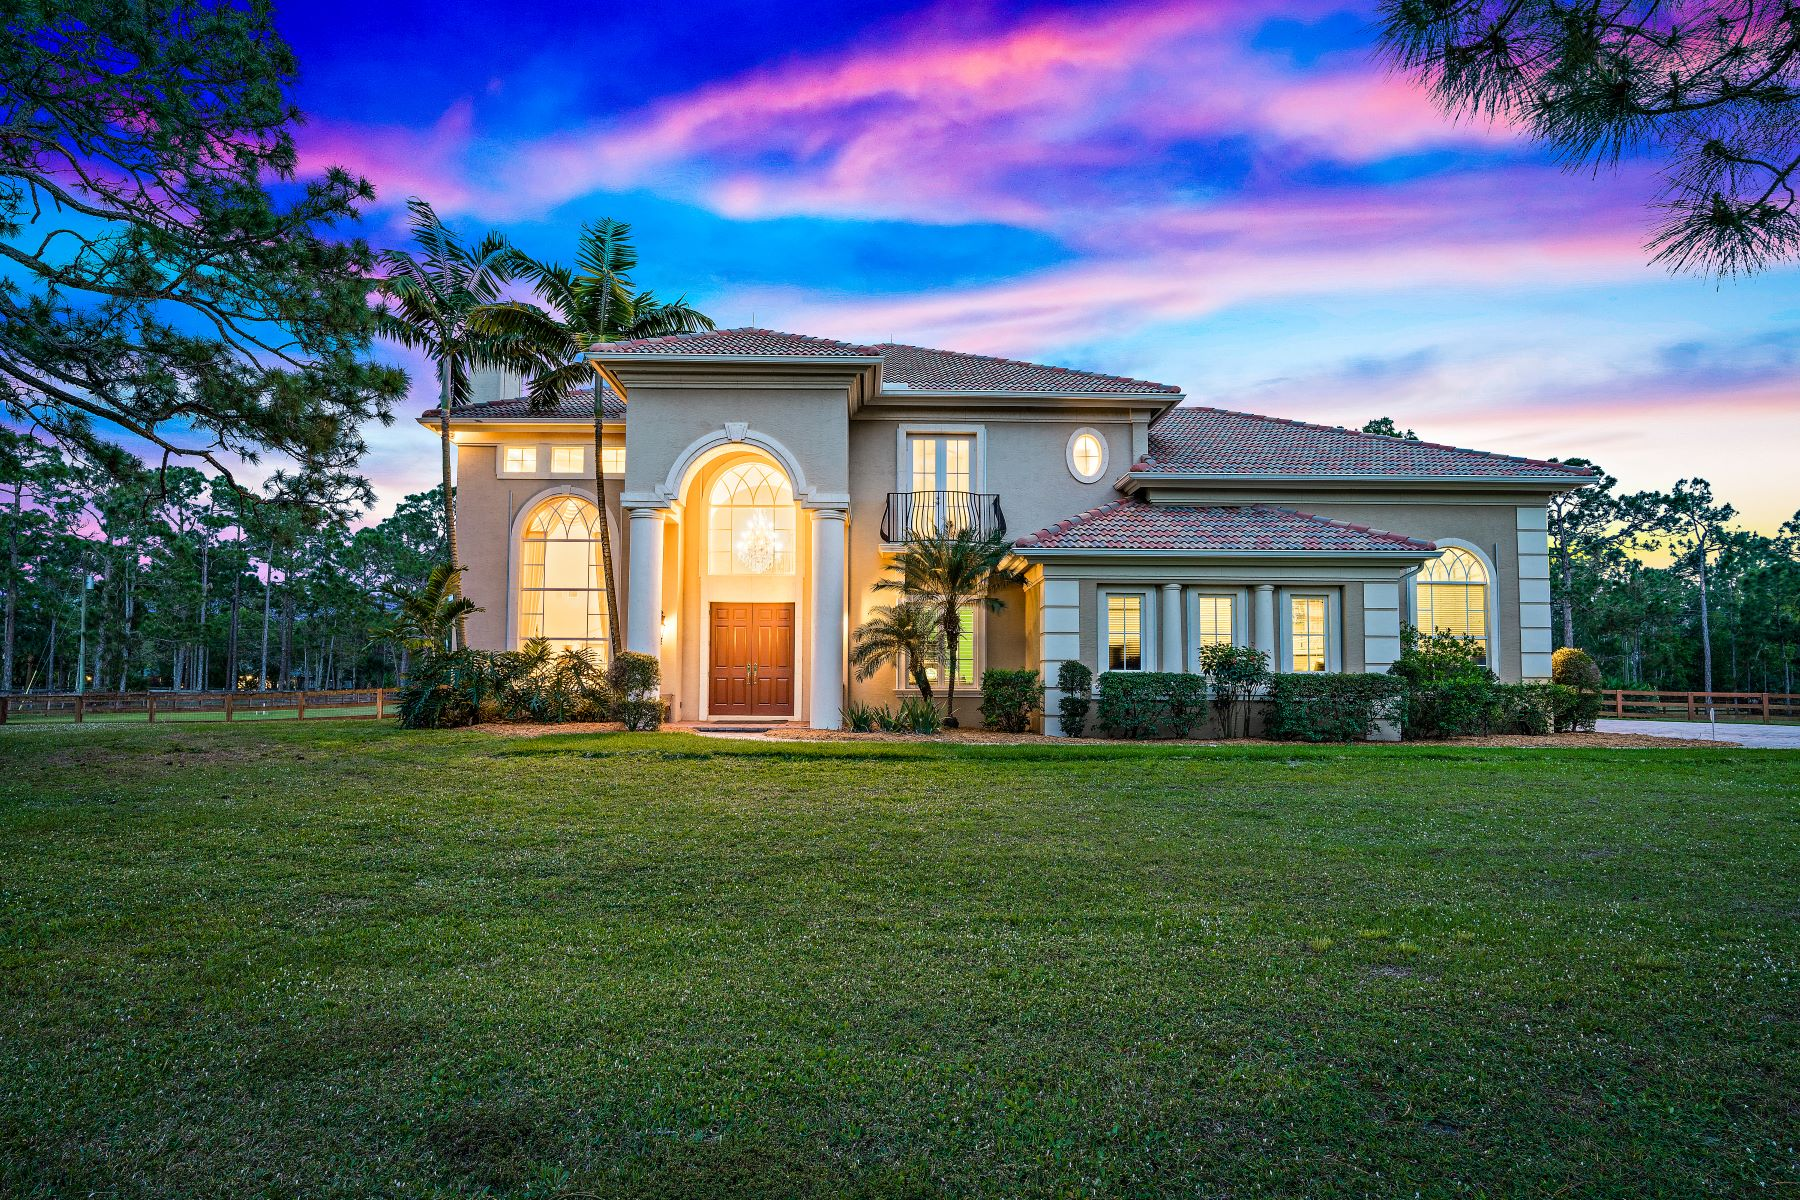 Single Family Homes for Sale at Palm Beach Gardens, Florida 33418 United States